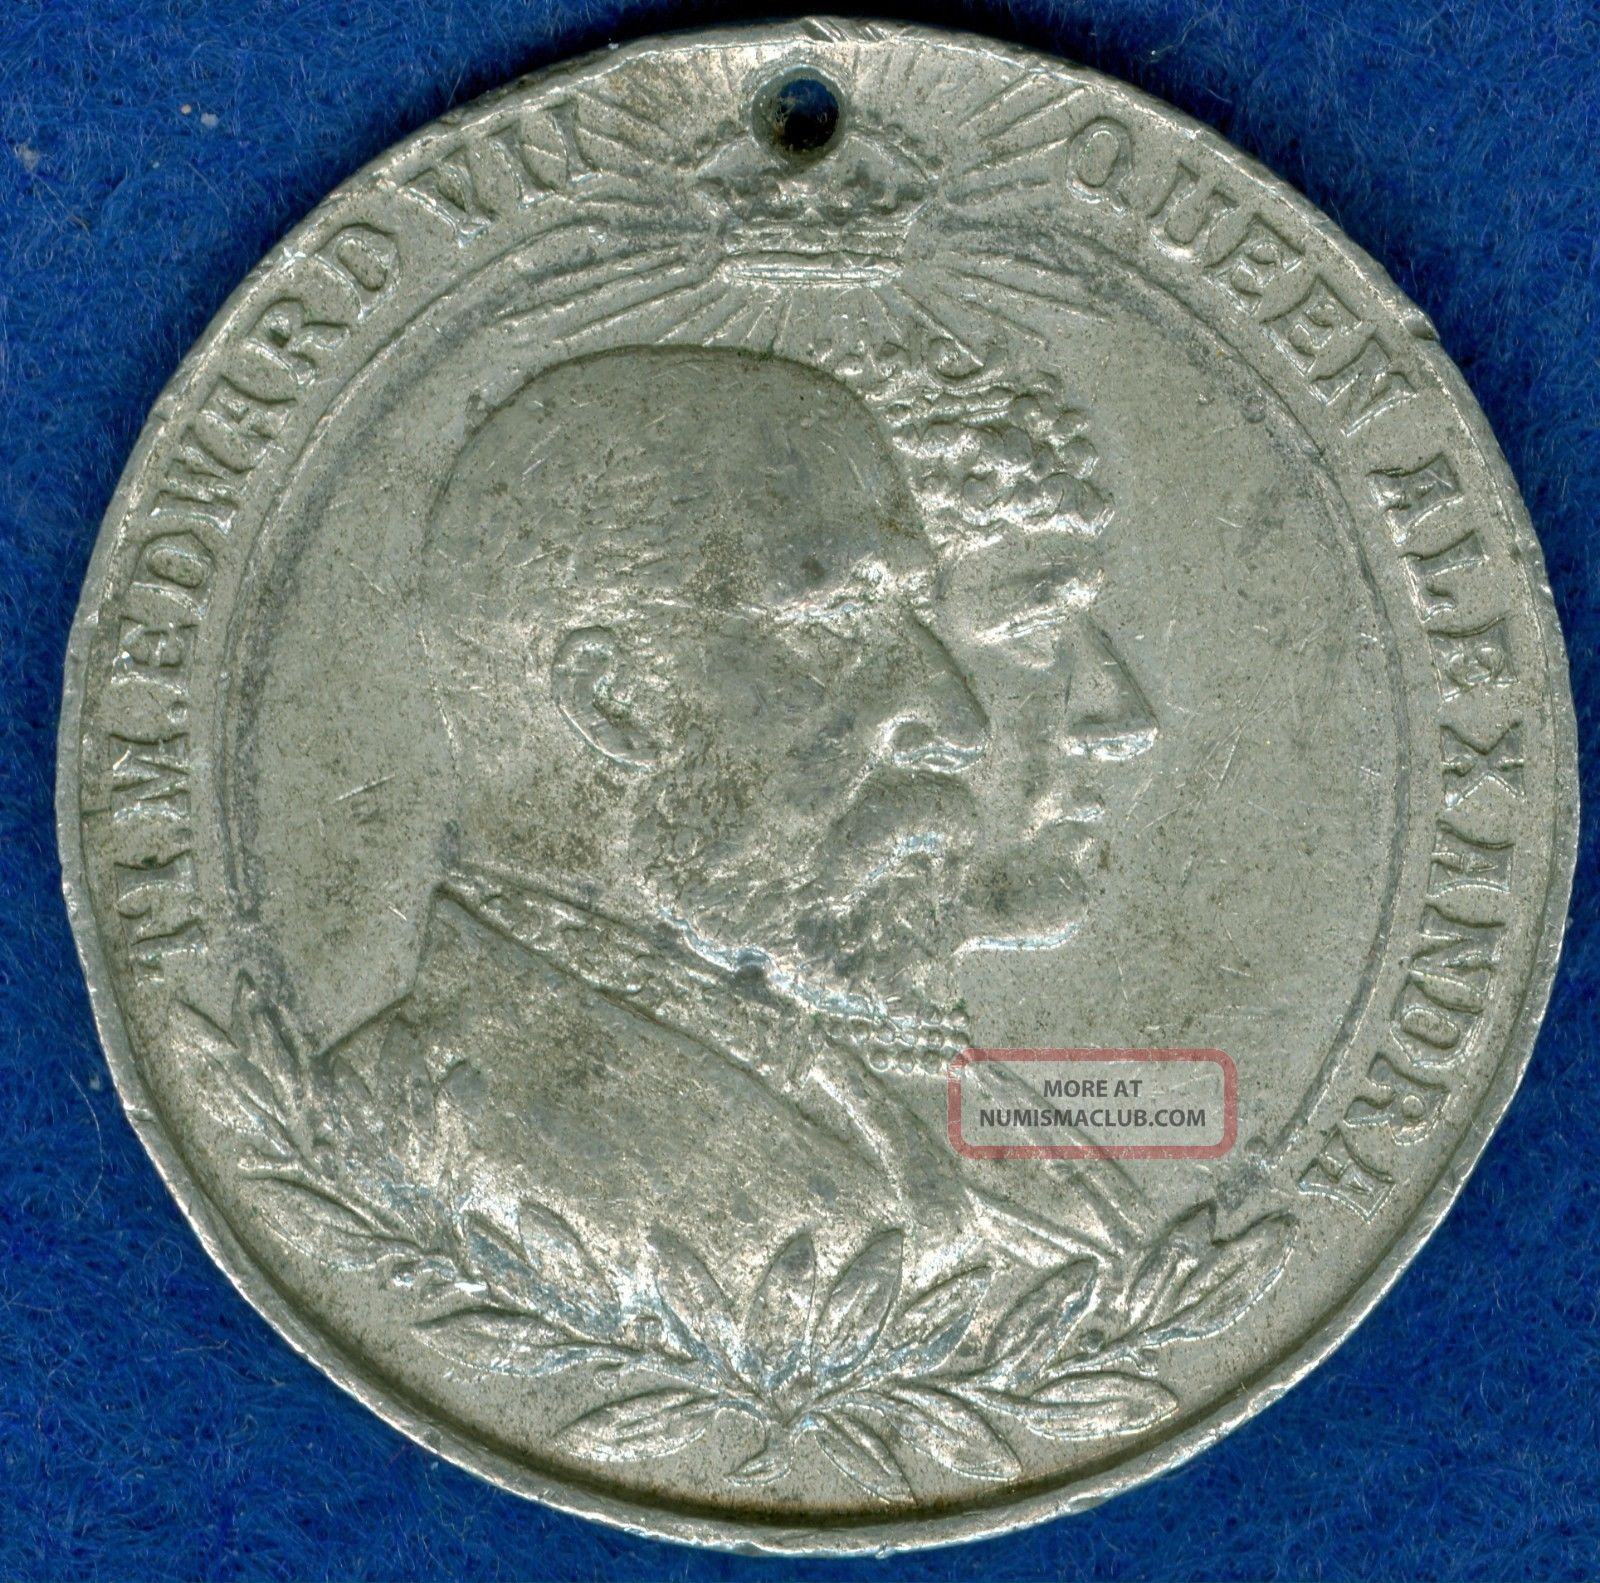 1902 King Edward Vii Coronation Celebration Medal,  Issued By Chatham Exonumia photo